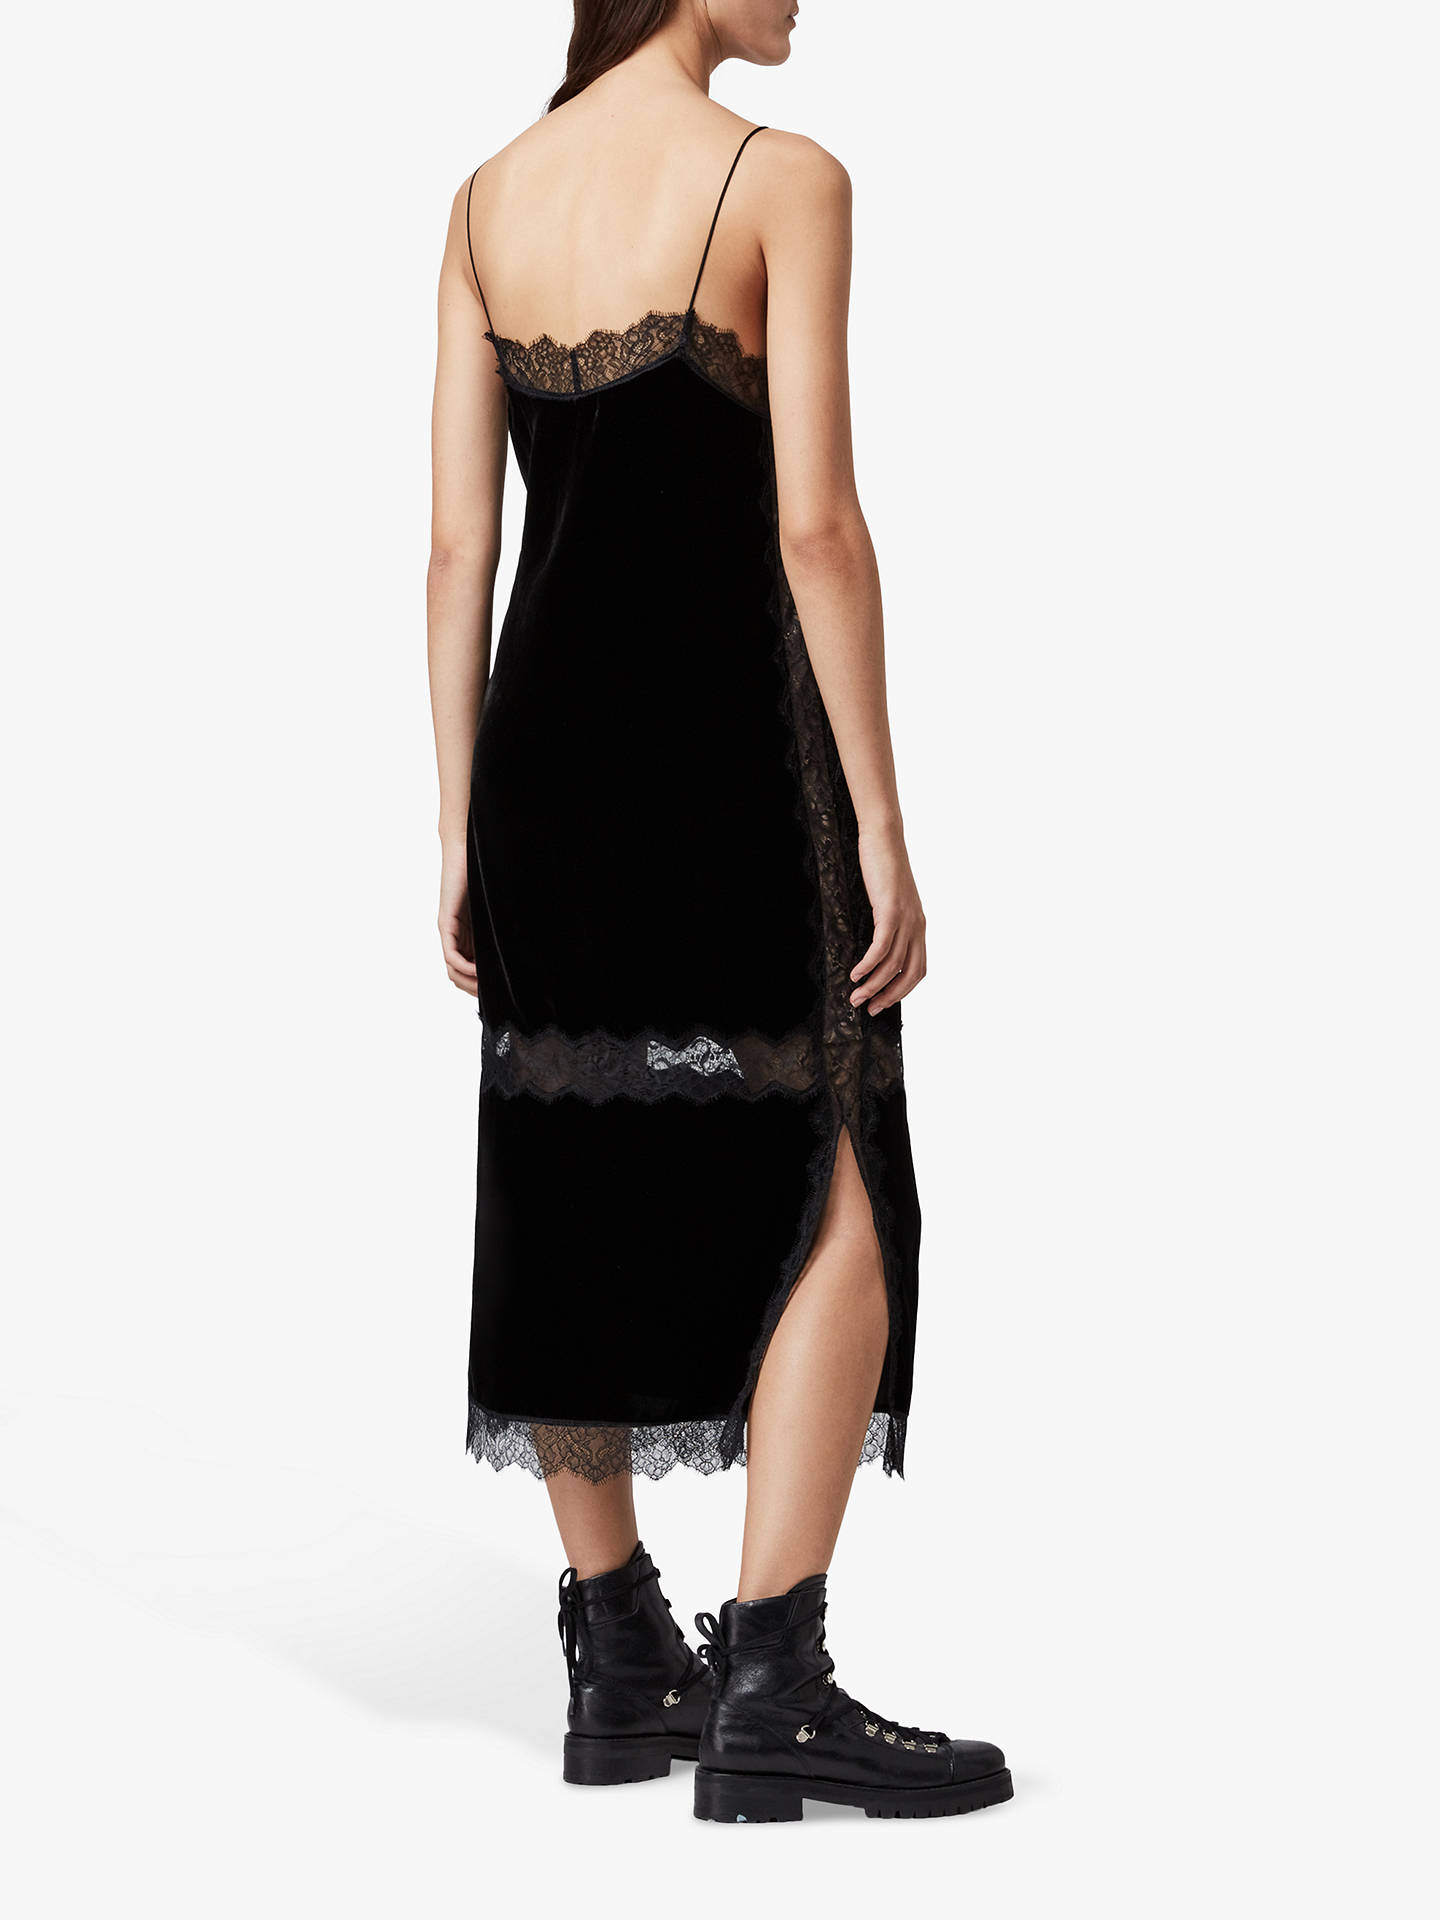 AllSaints Noa Velvet Slip Dress, Black at John Lewis & Partners